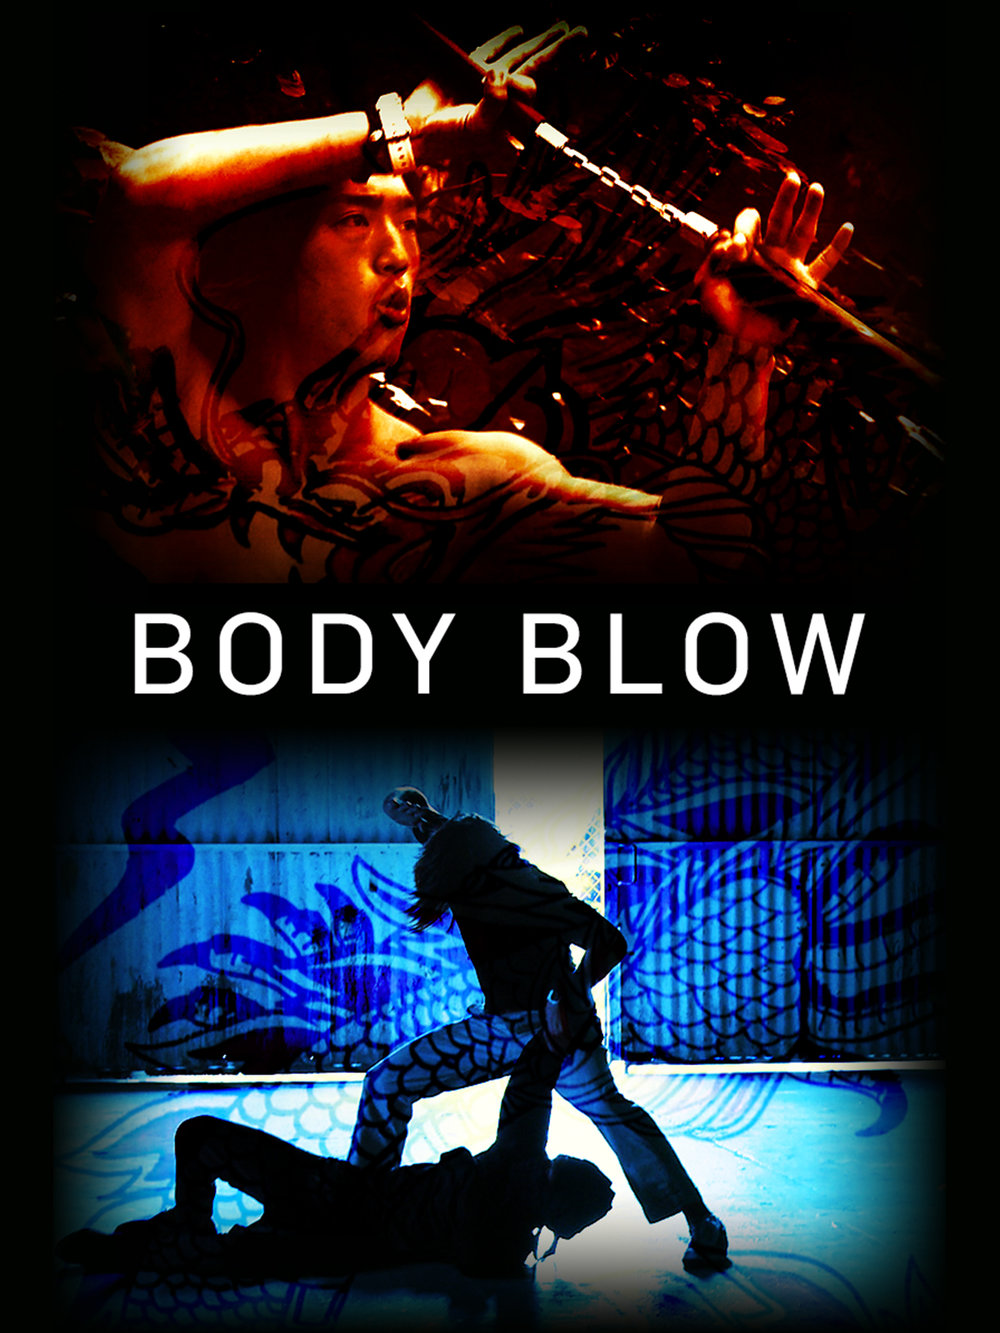 Here-BodyBlow-Full-Image-en-US.jpg